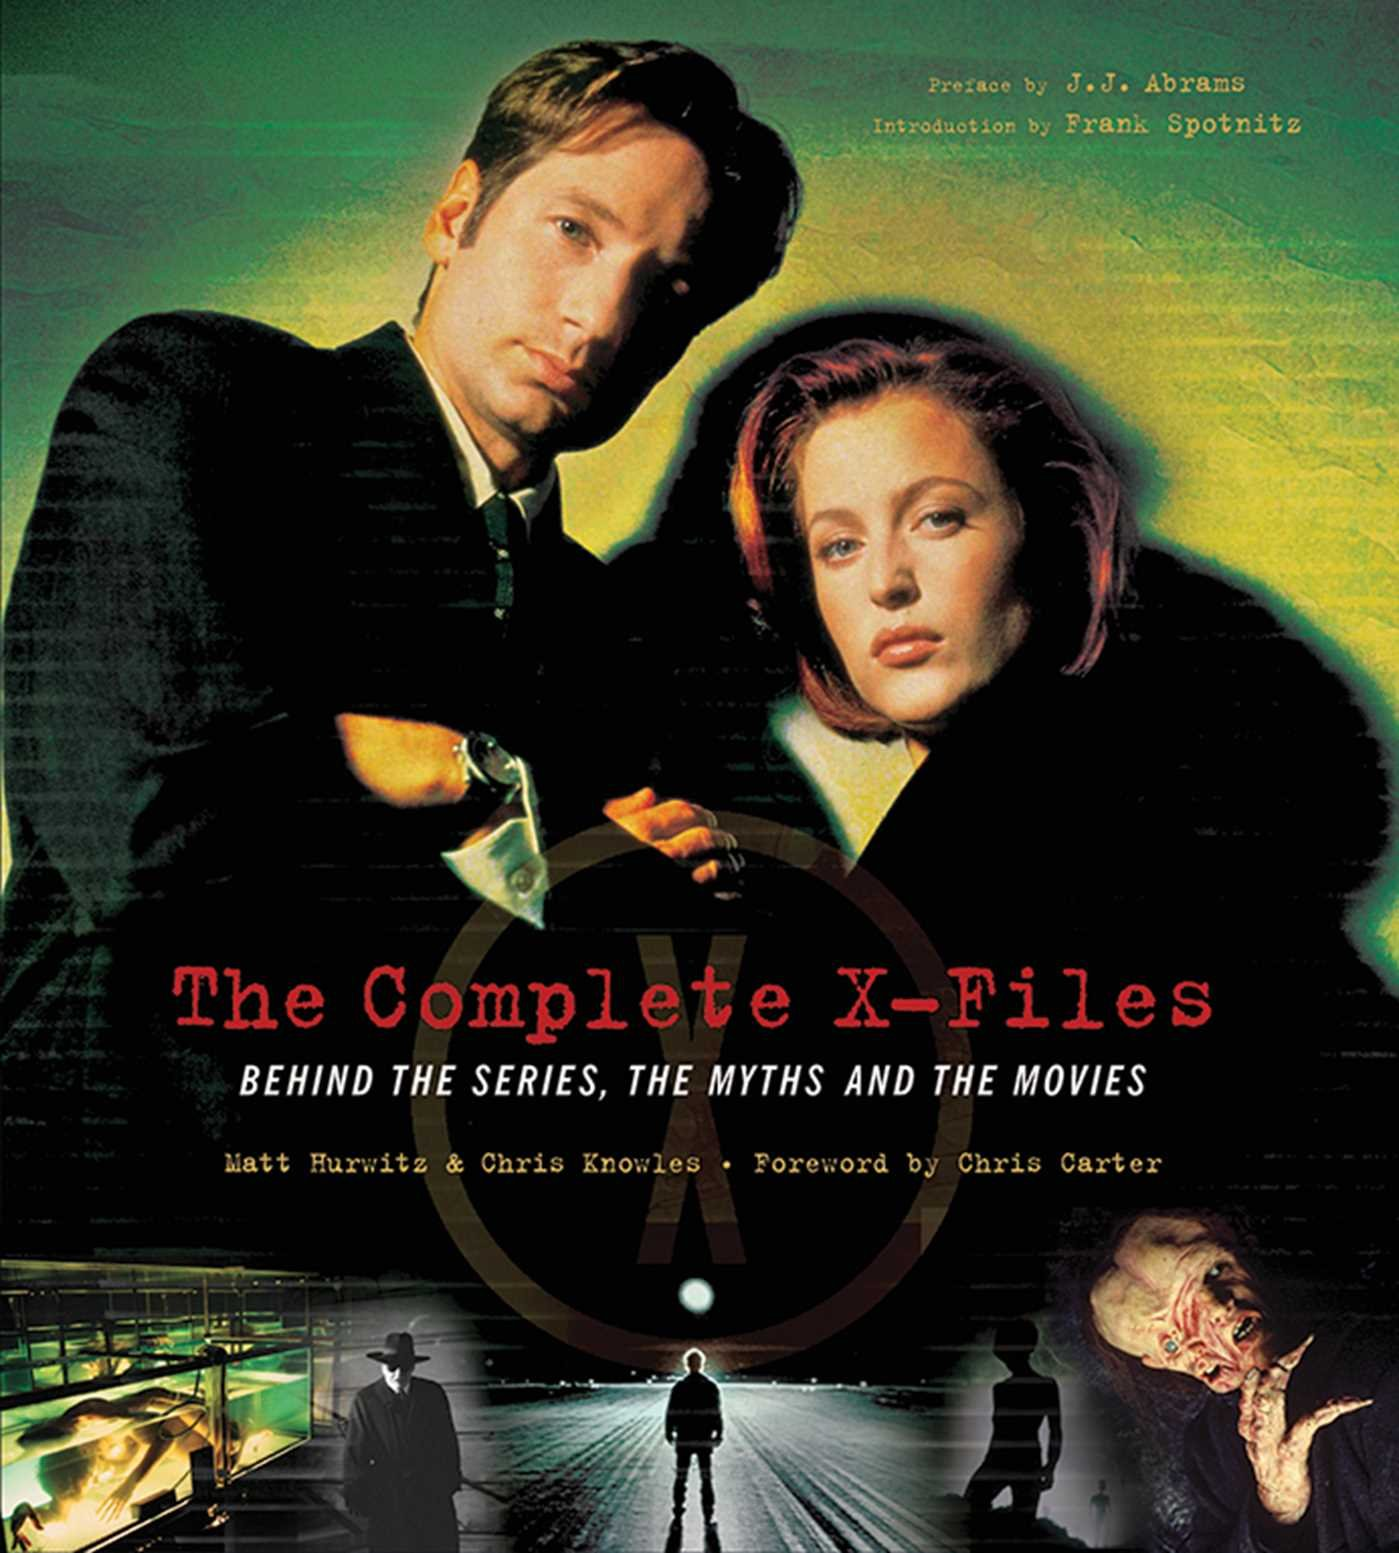 The Complete X-Files: Behind the Scenes, the Myths, and the